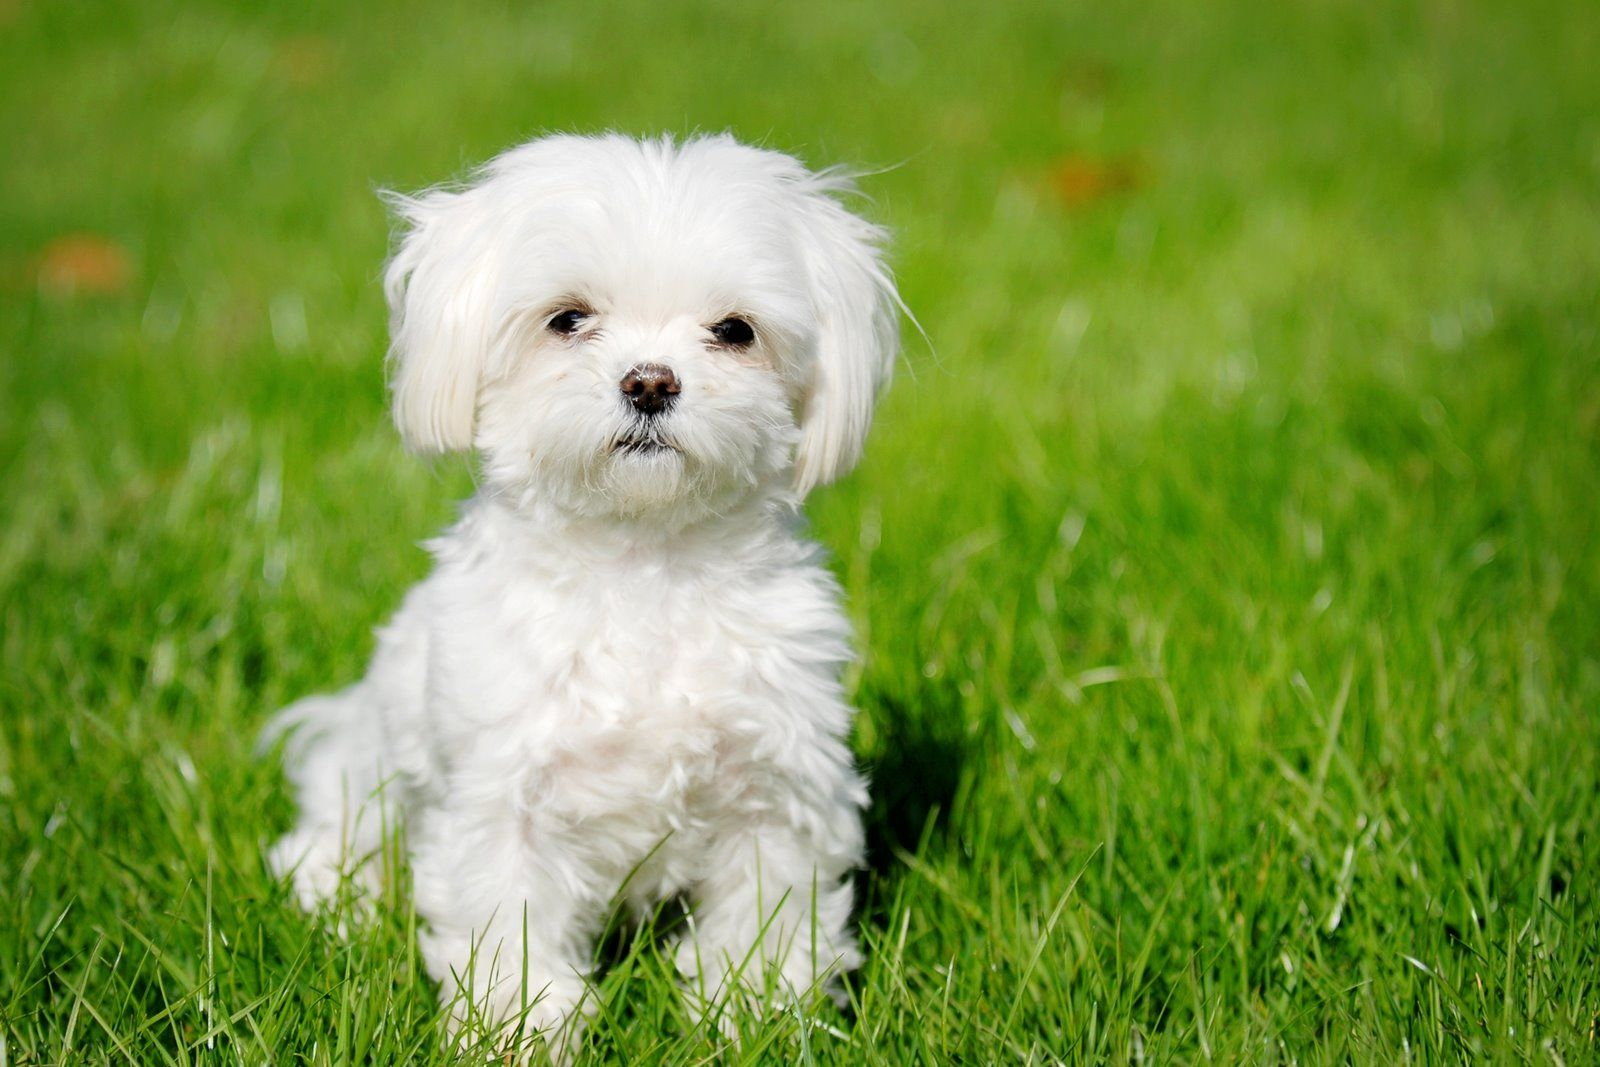 What S Going On In Your Dog S Head Tiny Dog Breeds Hypoallergenic Dog Breed Dog Breeds That Dont Shed